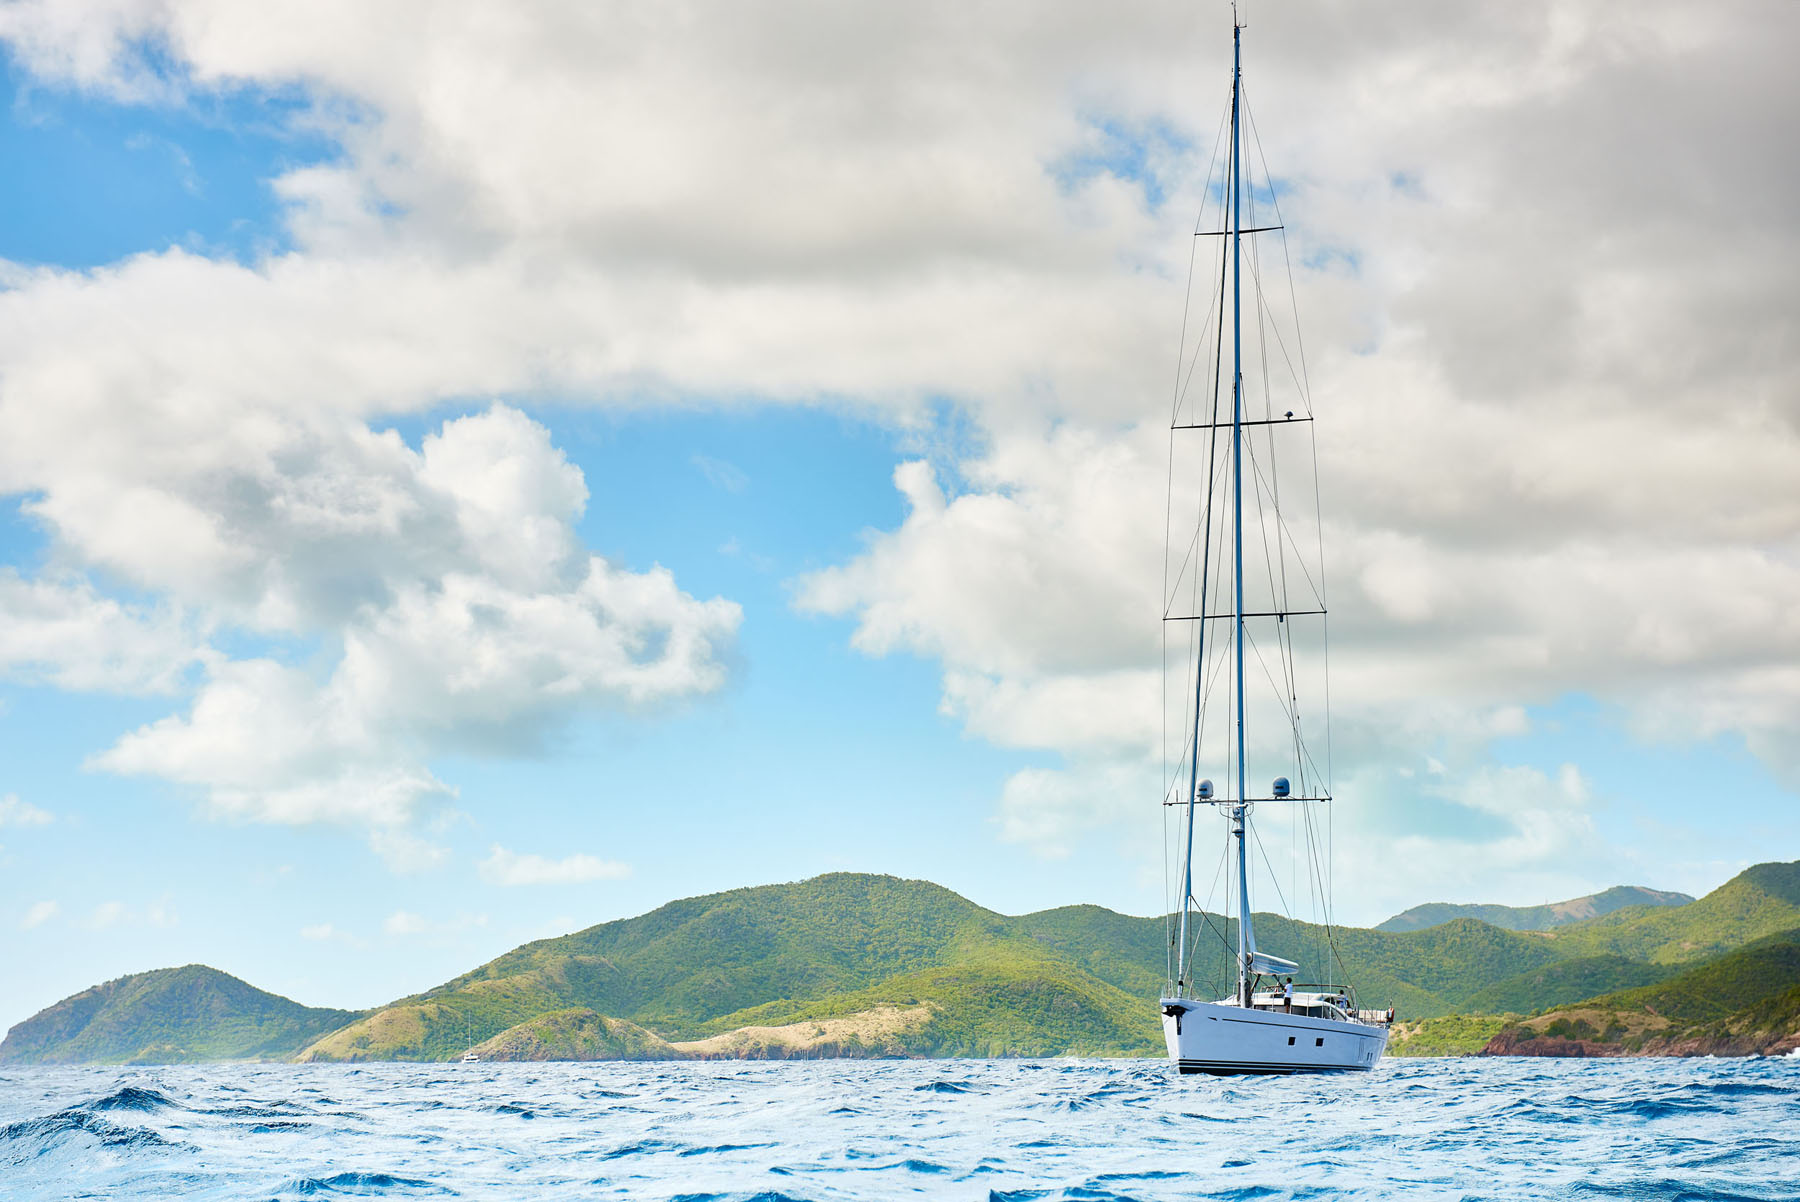 The beautiful scenery of Antigua provided a stunning backdrop to this yacht photoshoot